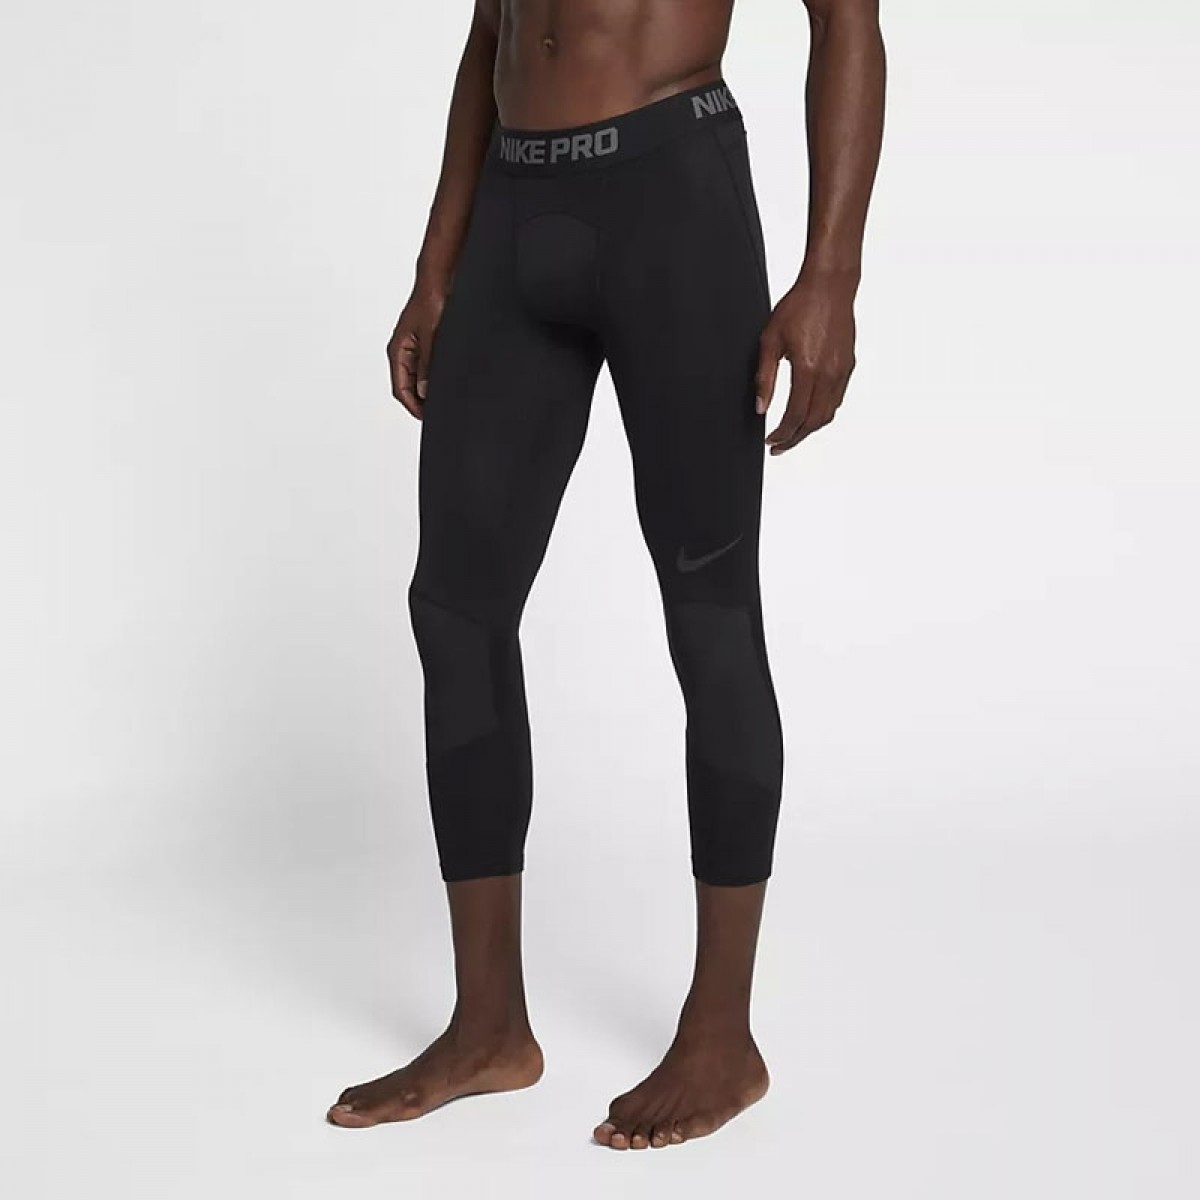 Nike Pro Dri-FIT Thigh 3/4 'Black'